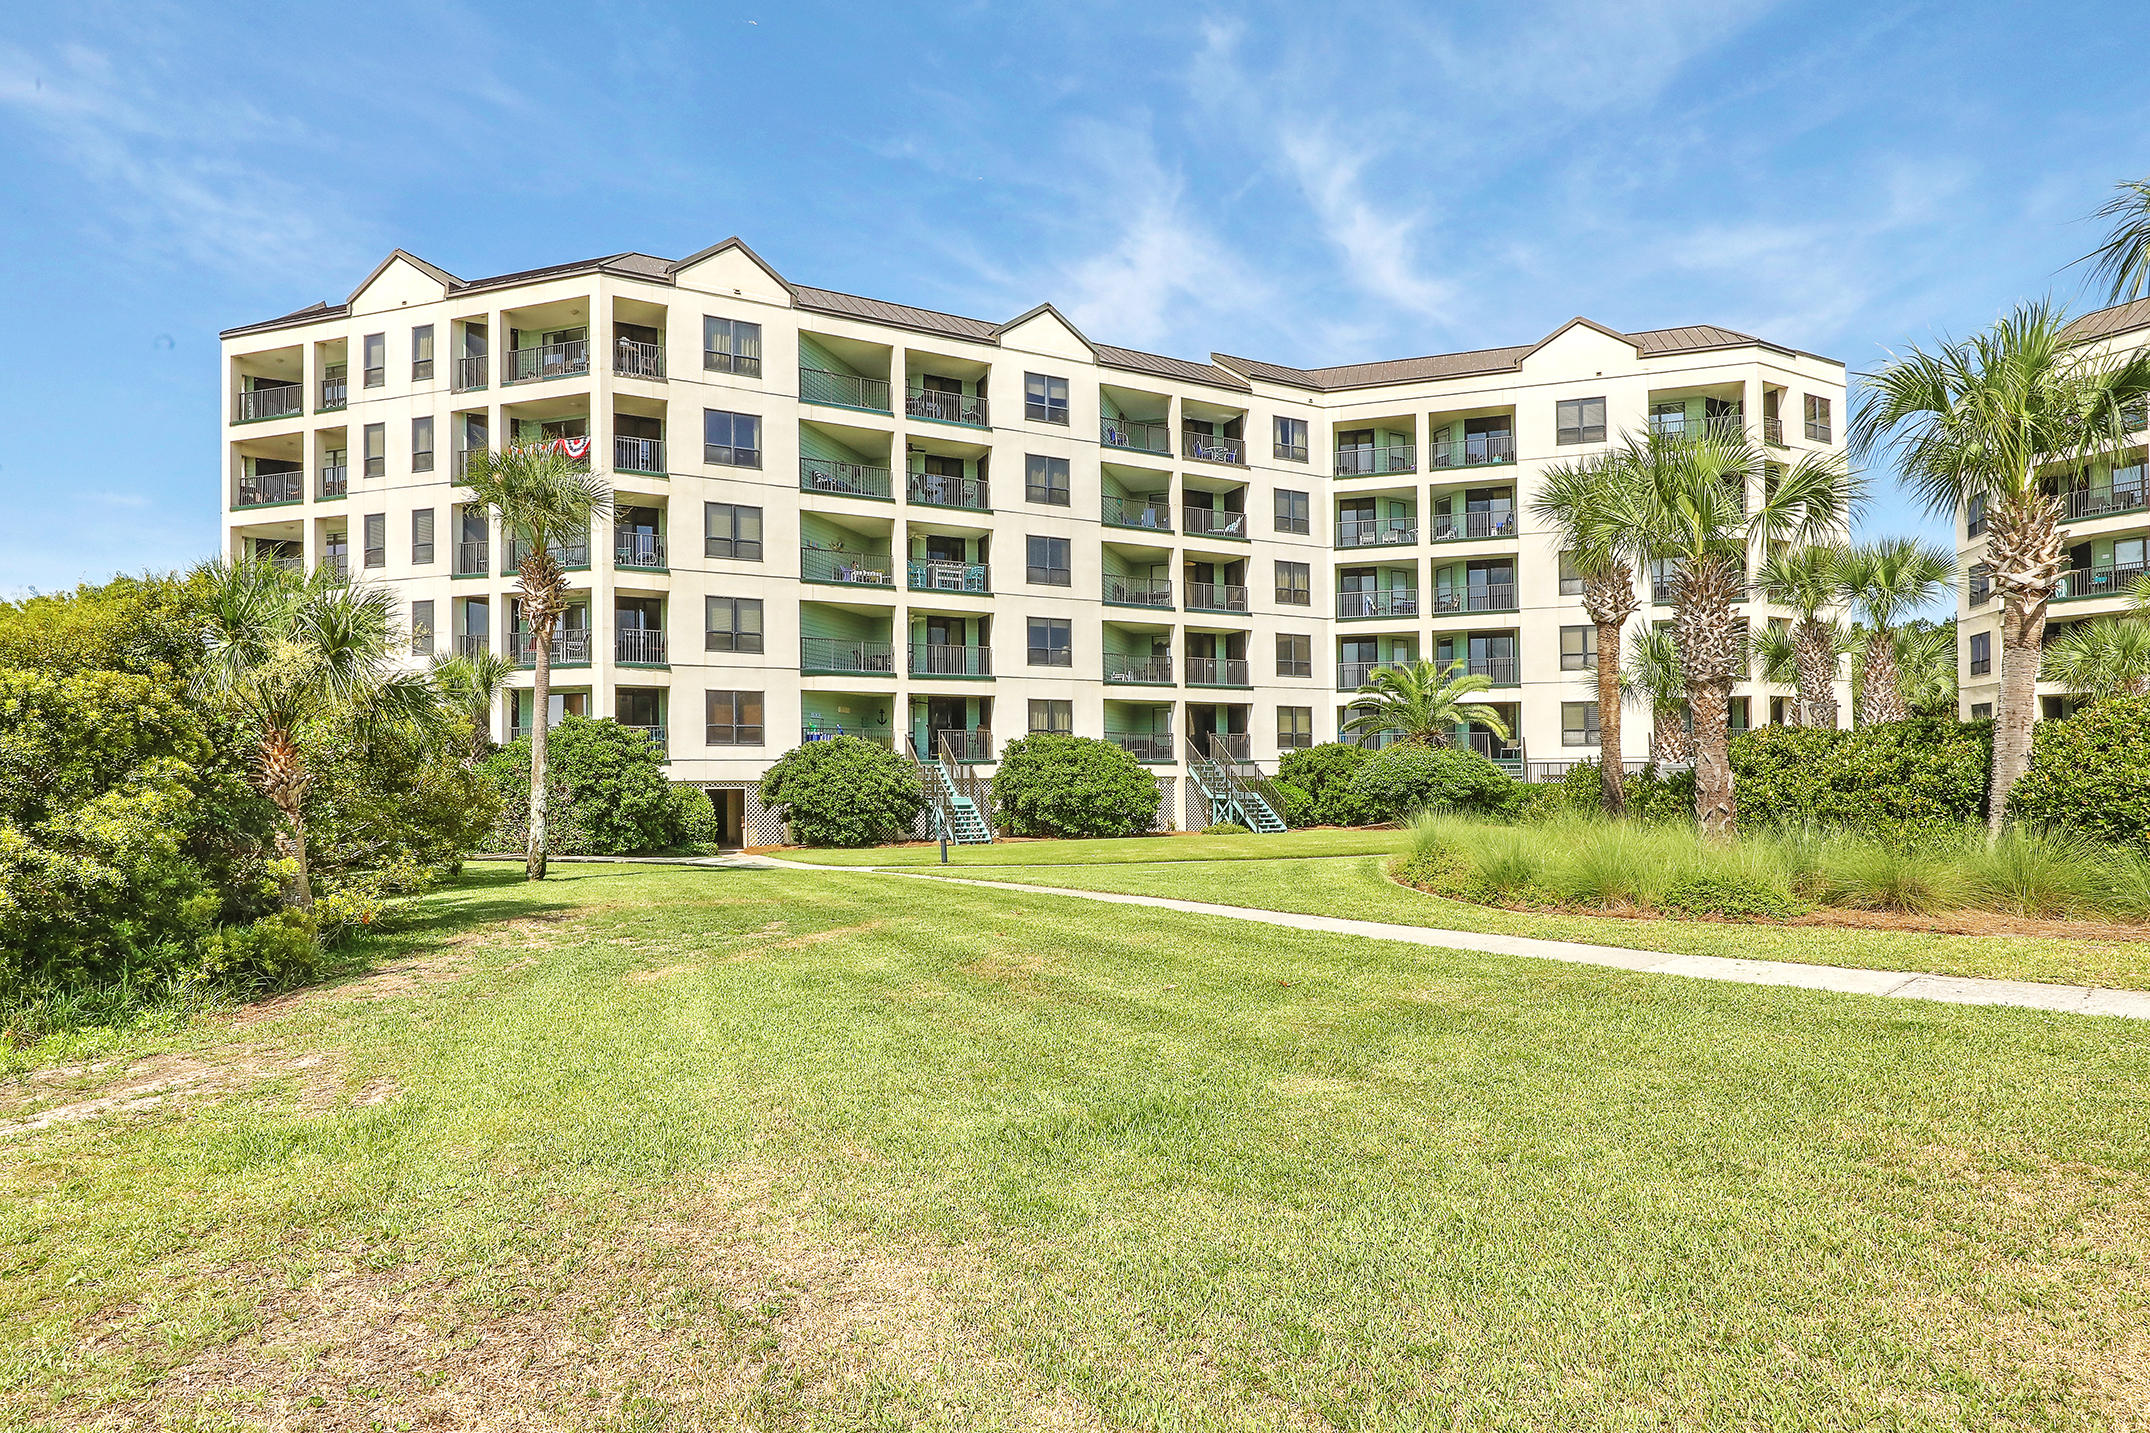 Wild Dunes Homes For Sale - 404 Summerhouse, Isle of Palms, SC - 29